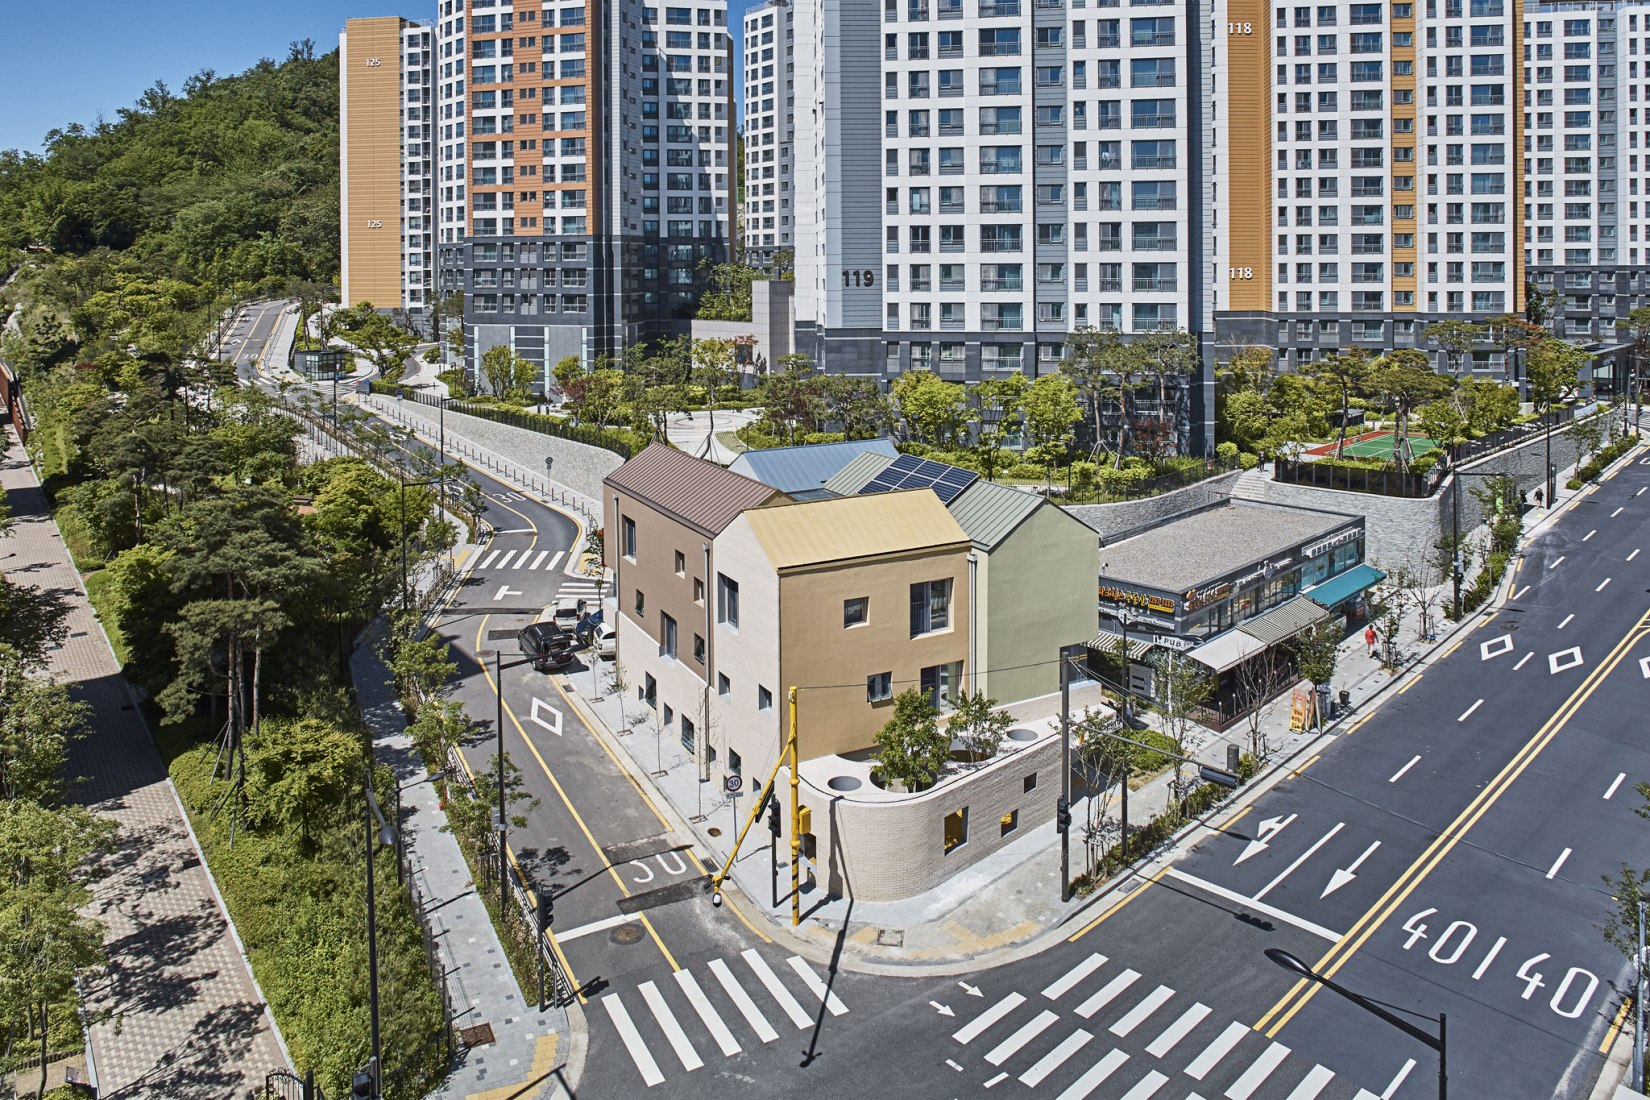 Aerial view. Maebong Daycare Center, new nursery school by Daniel Valle Architects. Photograph by Lee Namsun